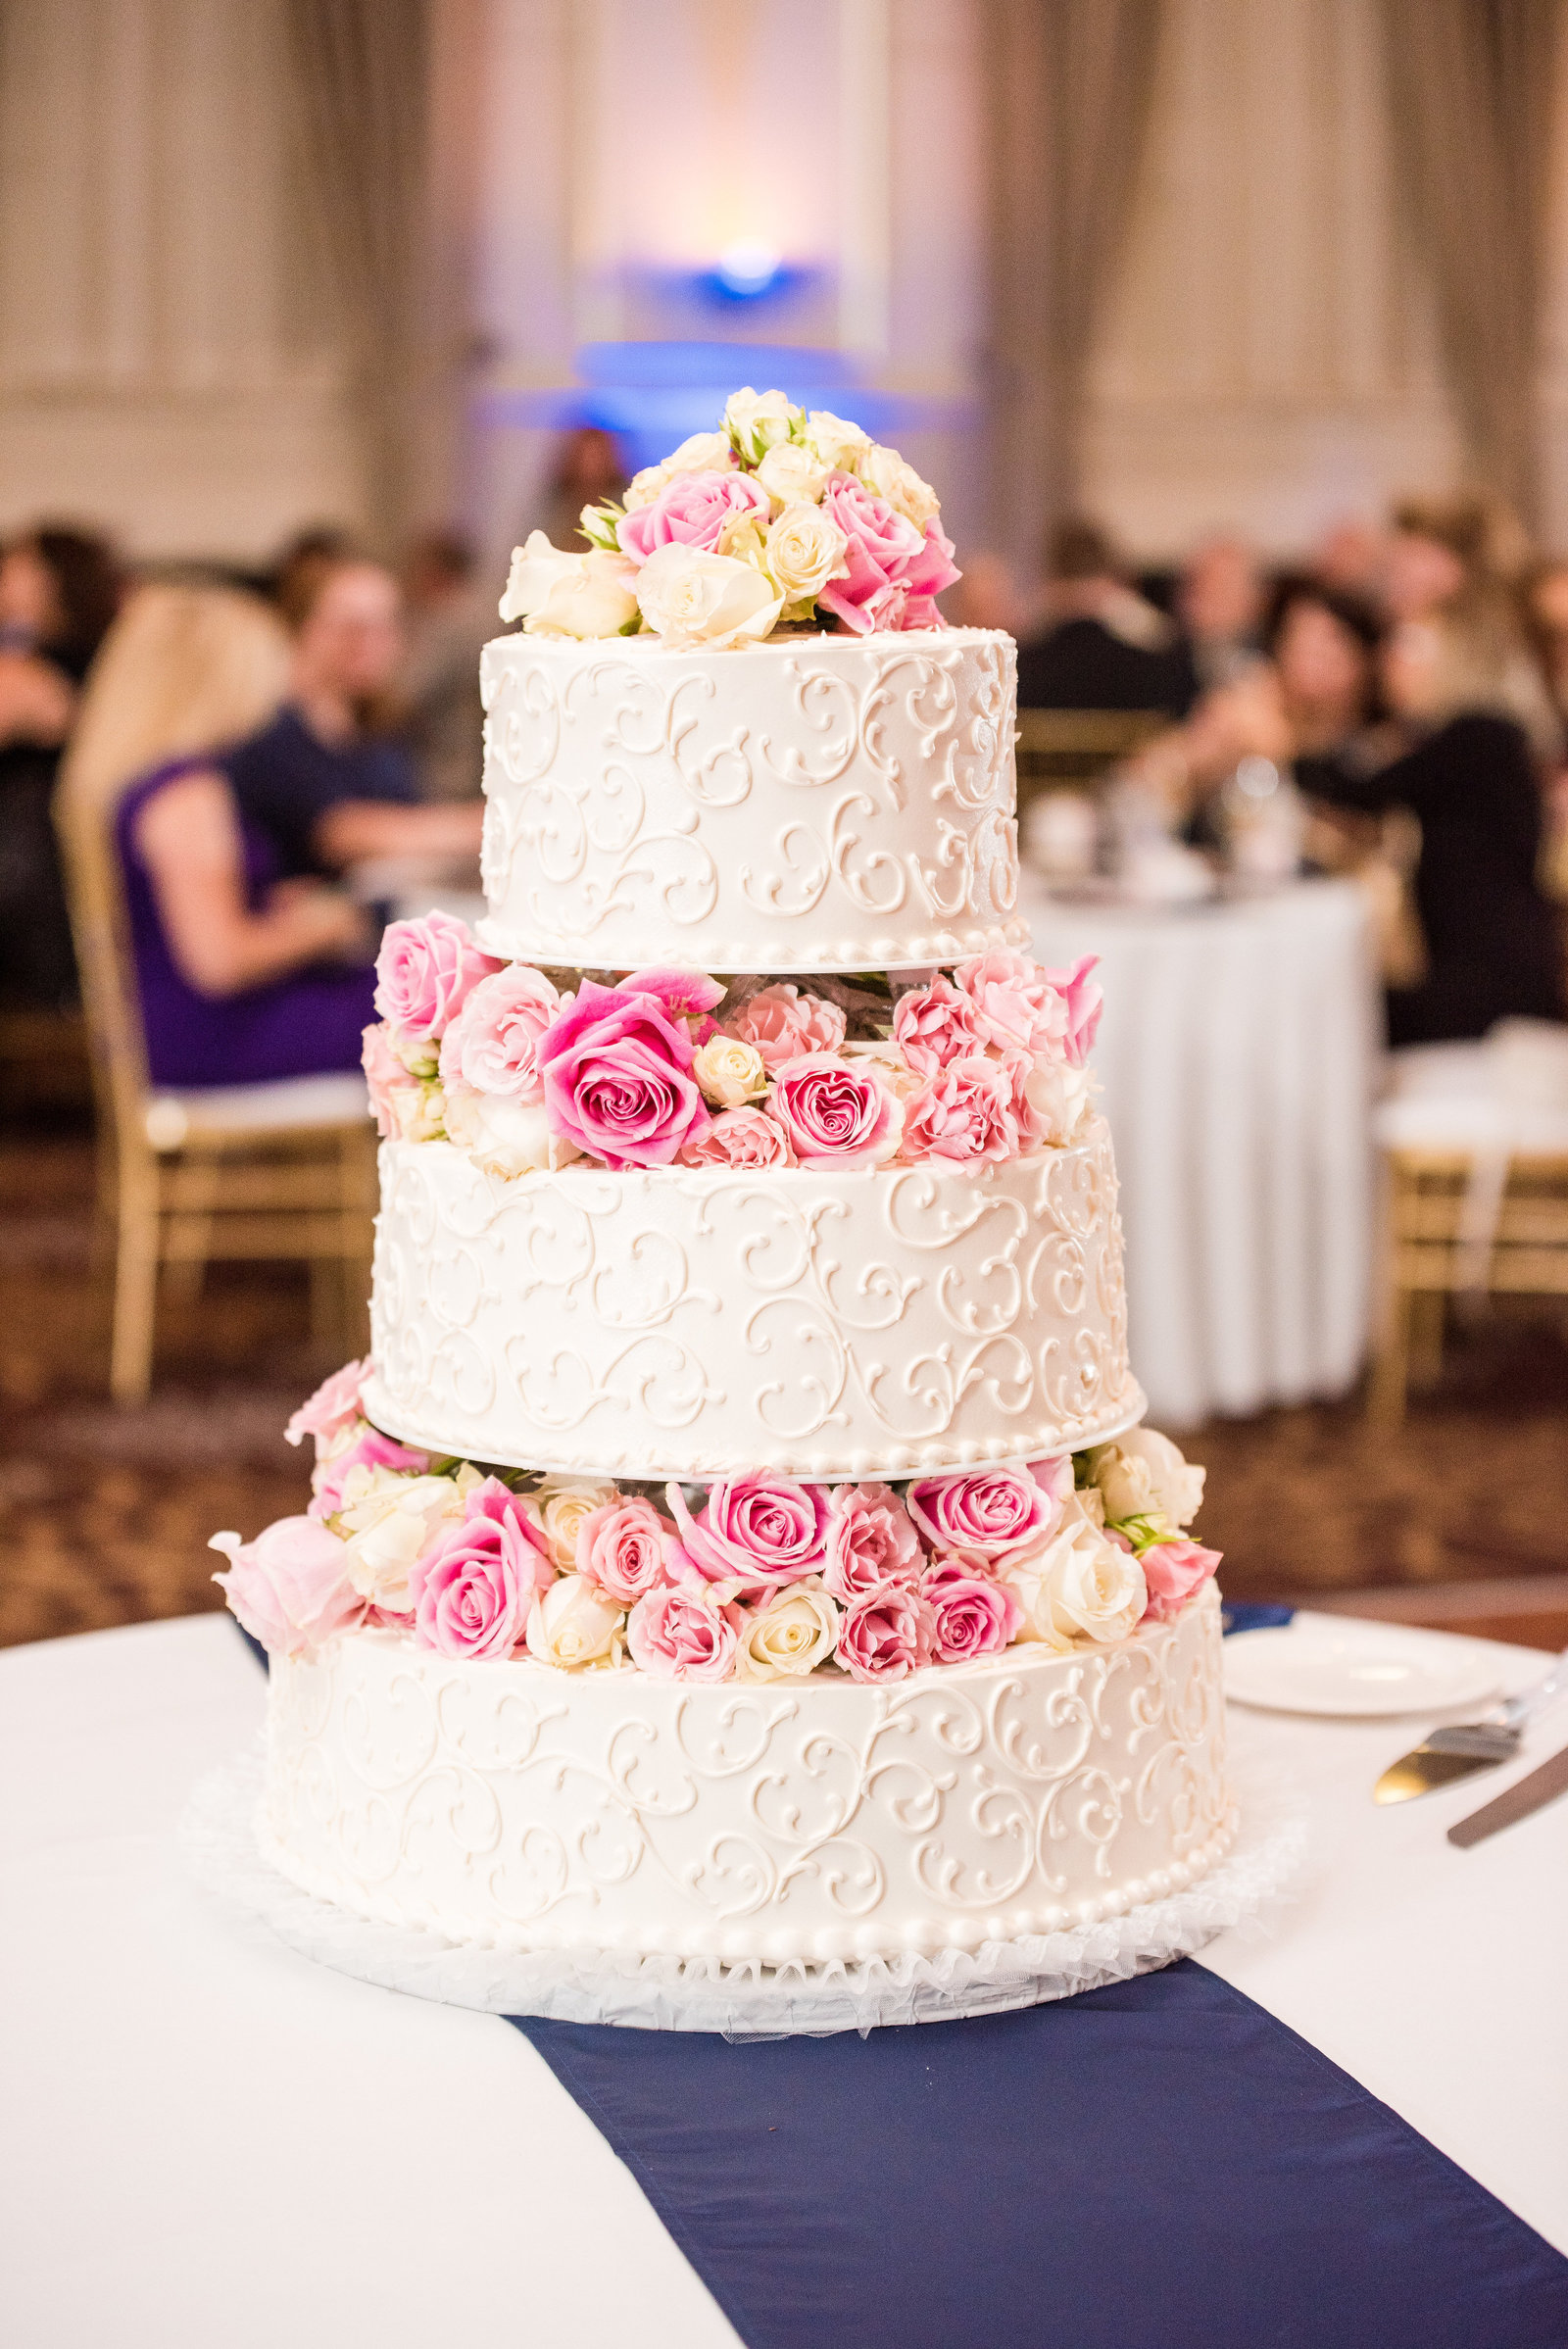 3 Tier White Wedding Cake With Pink and White Florals Wedding Reception Details Virginia Wedding Photographer